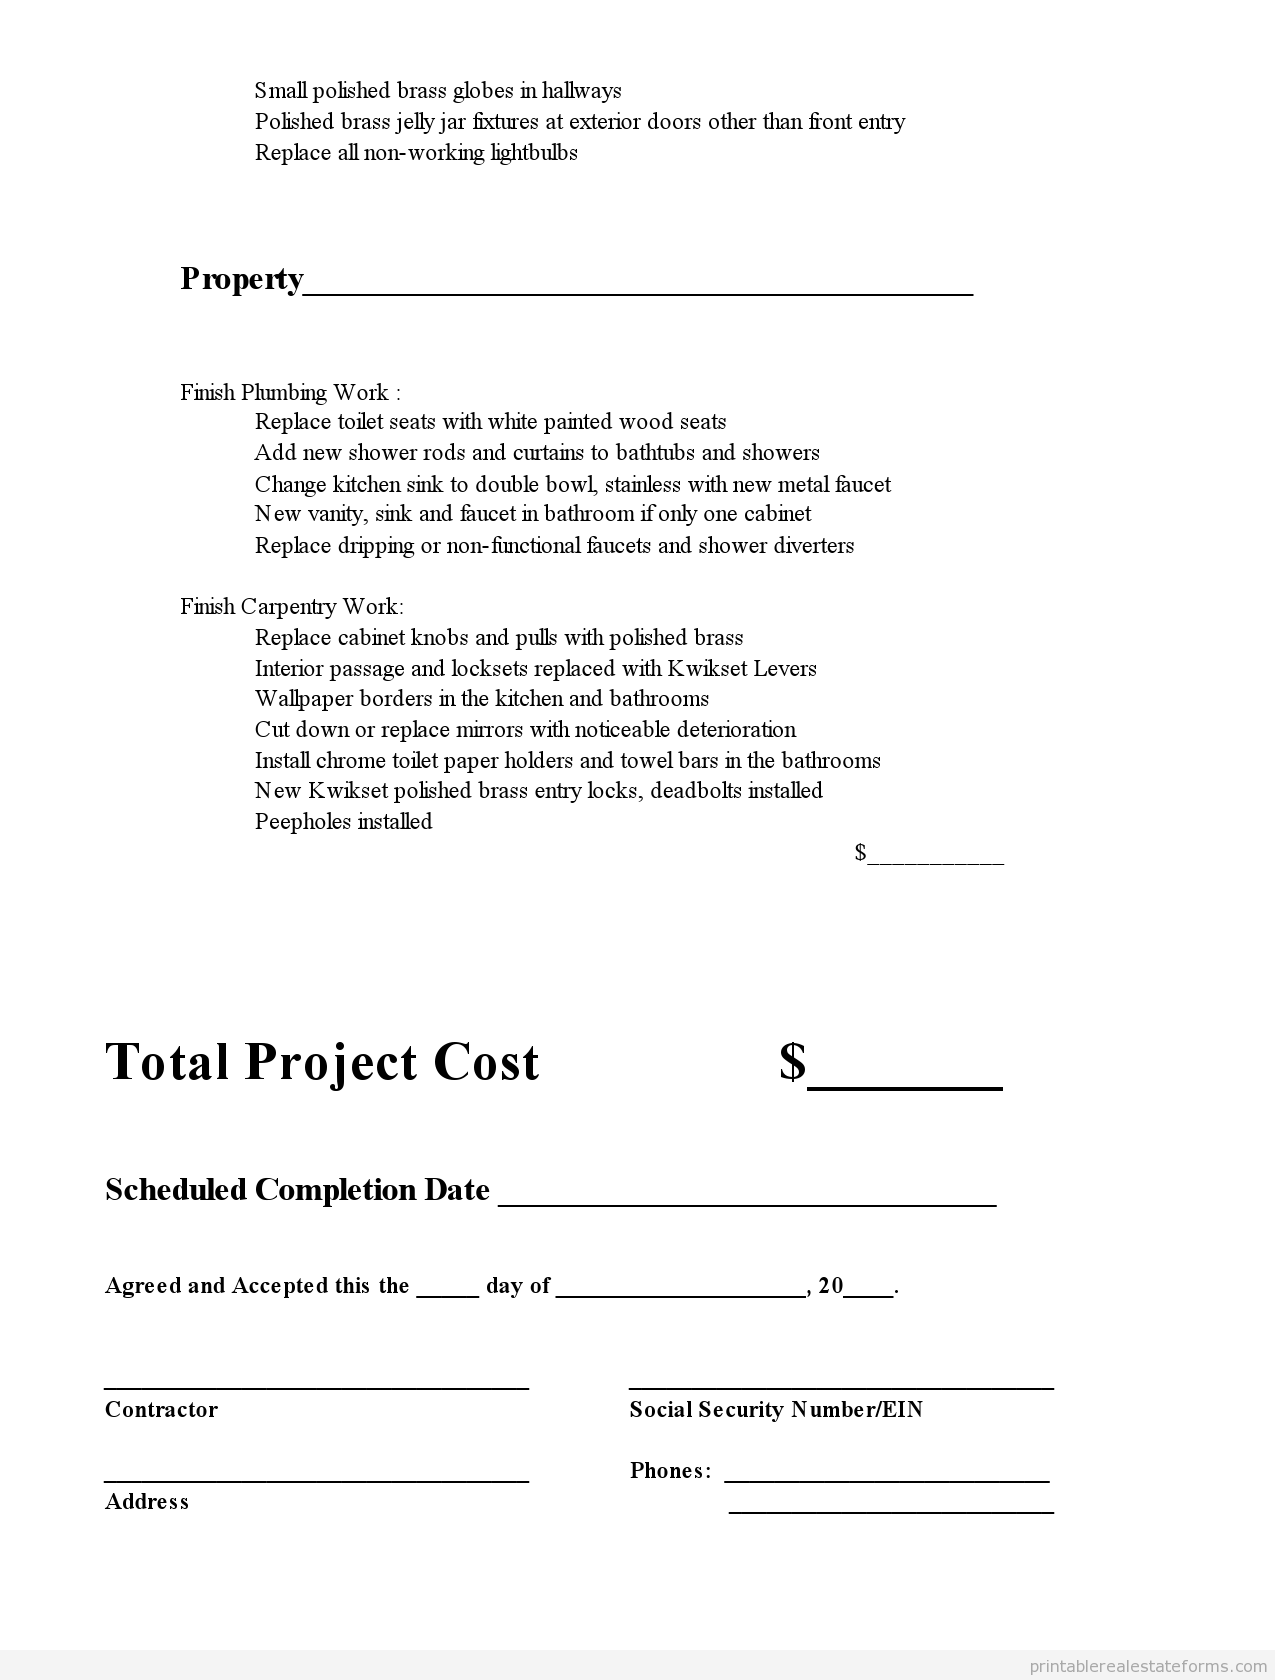 Printable Subcontractor Agreement Template   Sample Forms